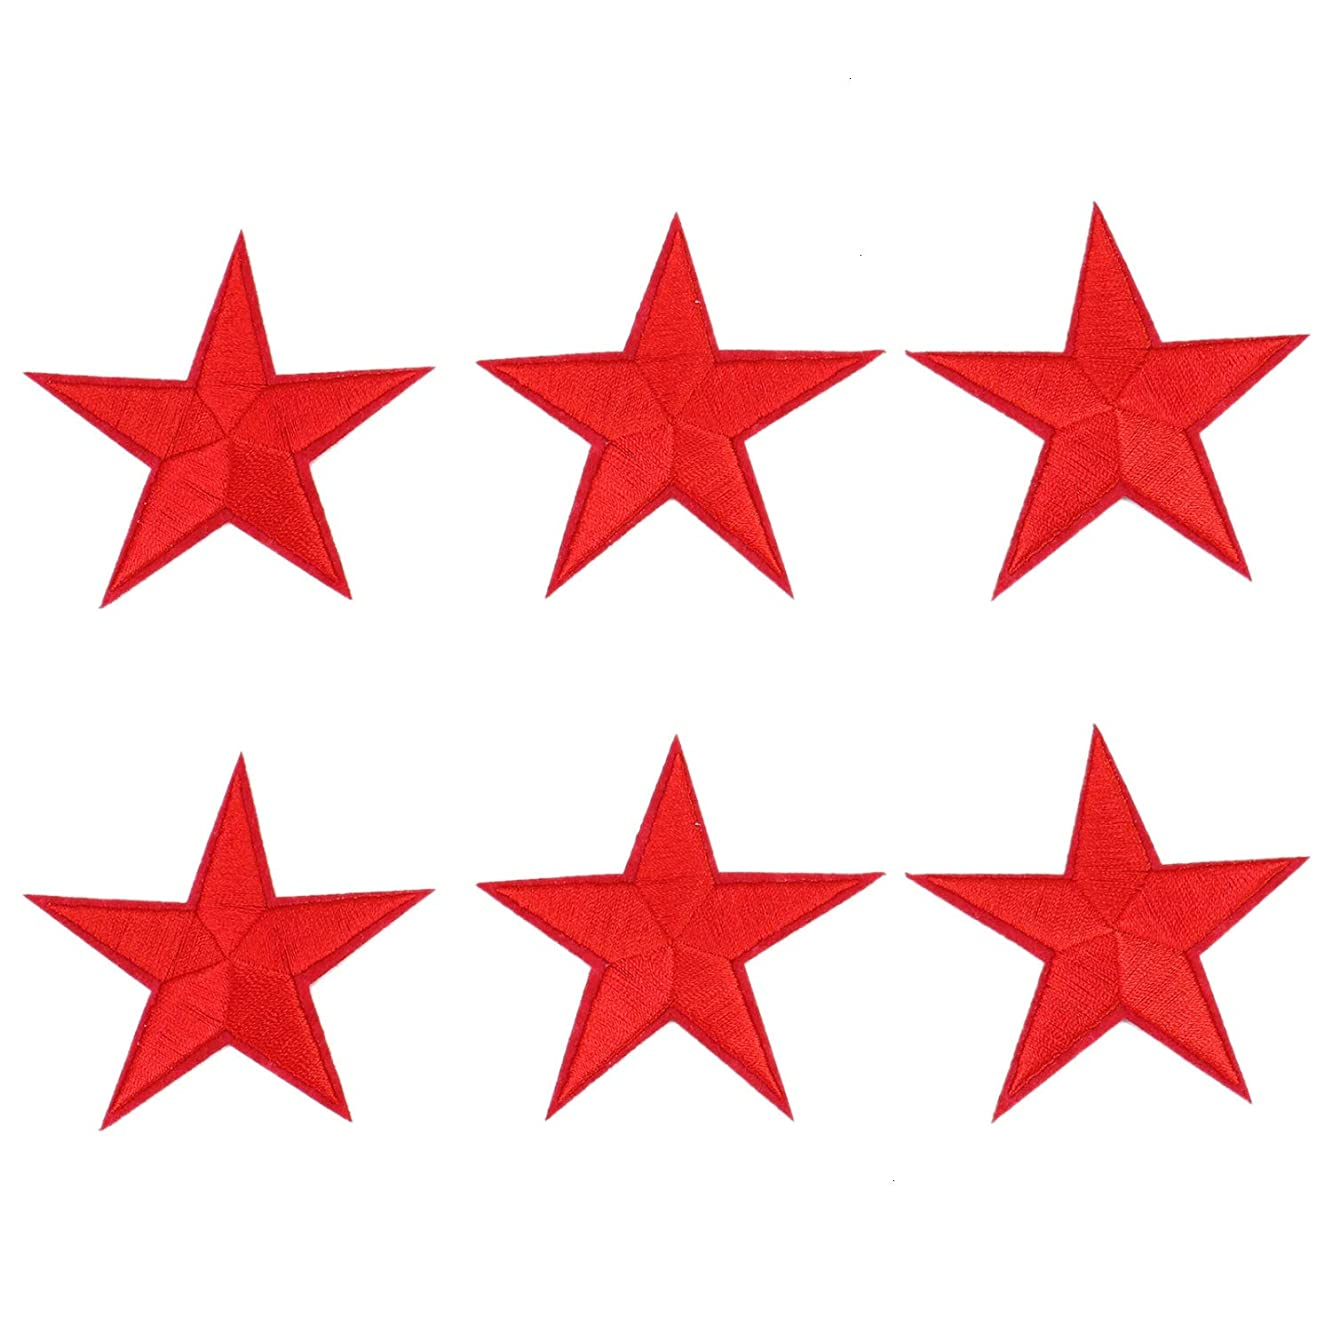 Monrocco 30PCS Red Star Applique Clothing Iron On Patch Sewing Craft Decoration for DIY Clothing Jeans T-Shirt